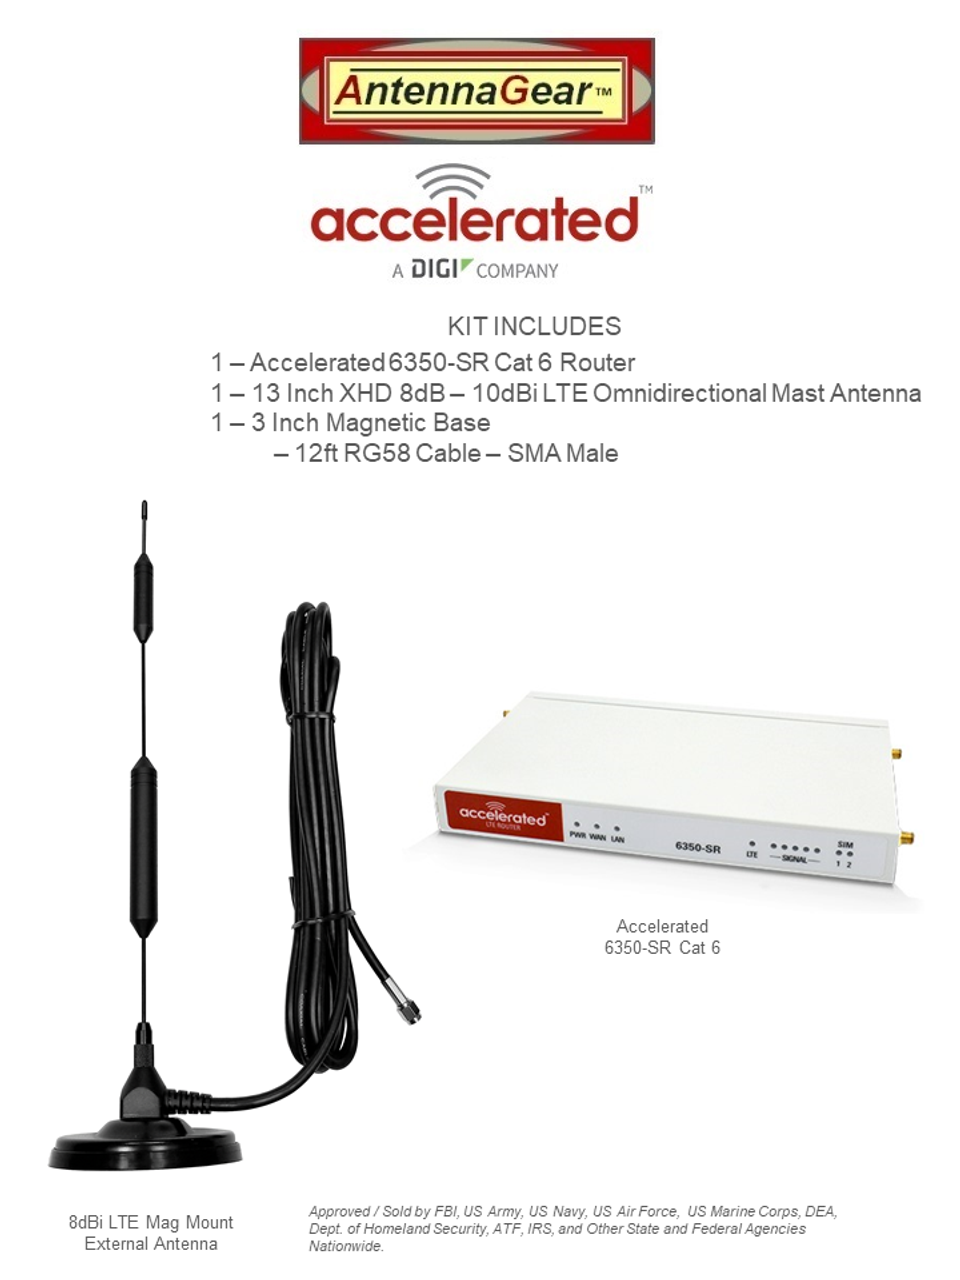 """Accelerated 6350-SR LTE Router CAT 6 w/ 13""""- XHD 8dBi Military Grade 3G 4G 5G LTE Magnetic Mount Antenna - SMA Male"""